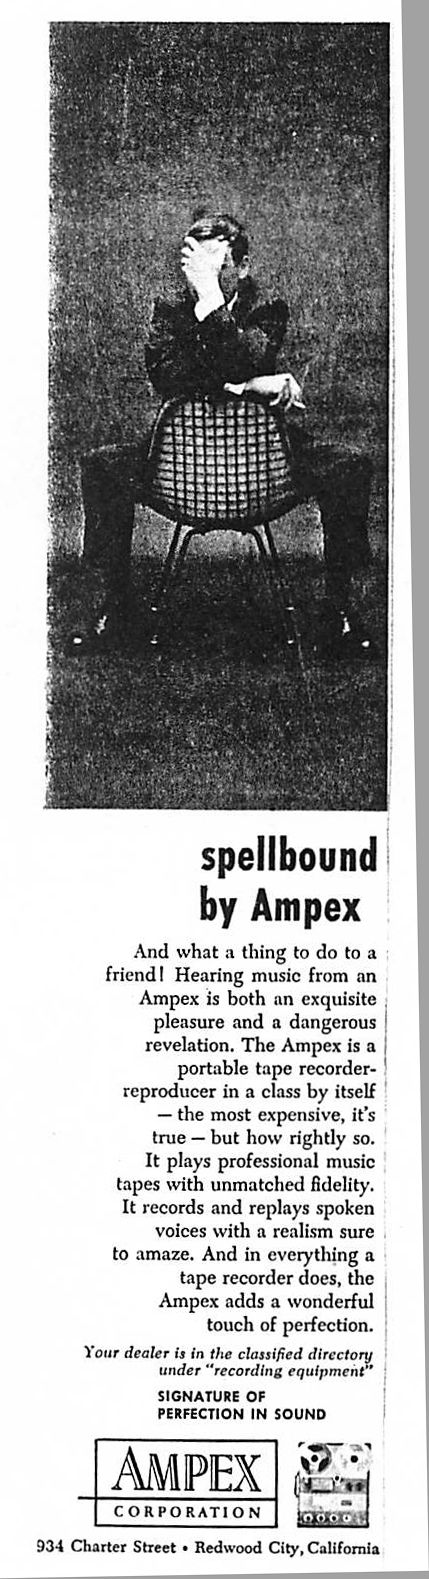 #Eames Upholstered Wire Chair in a 1955 Ampex advertisement